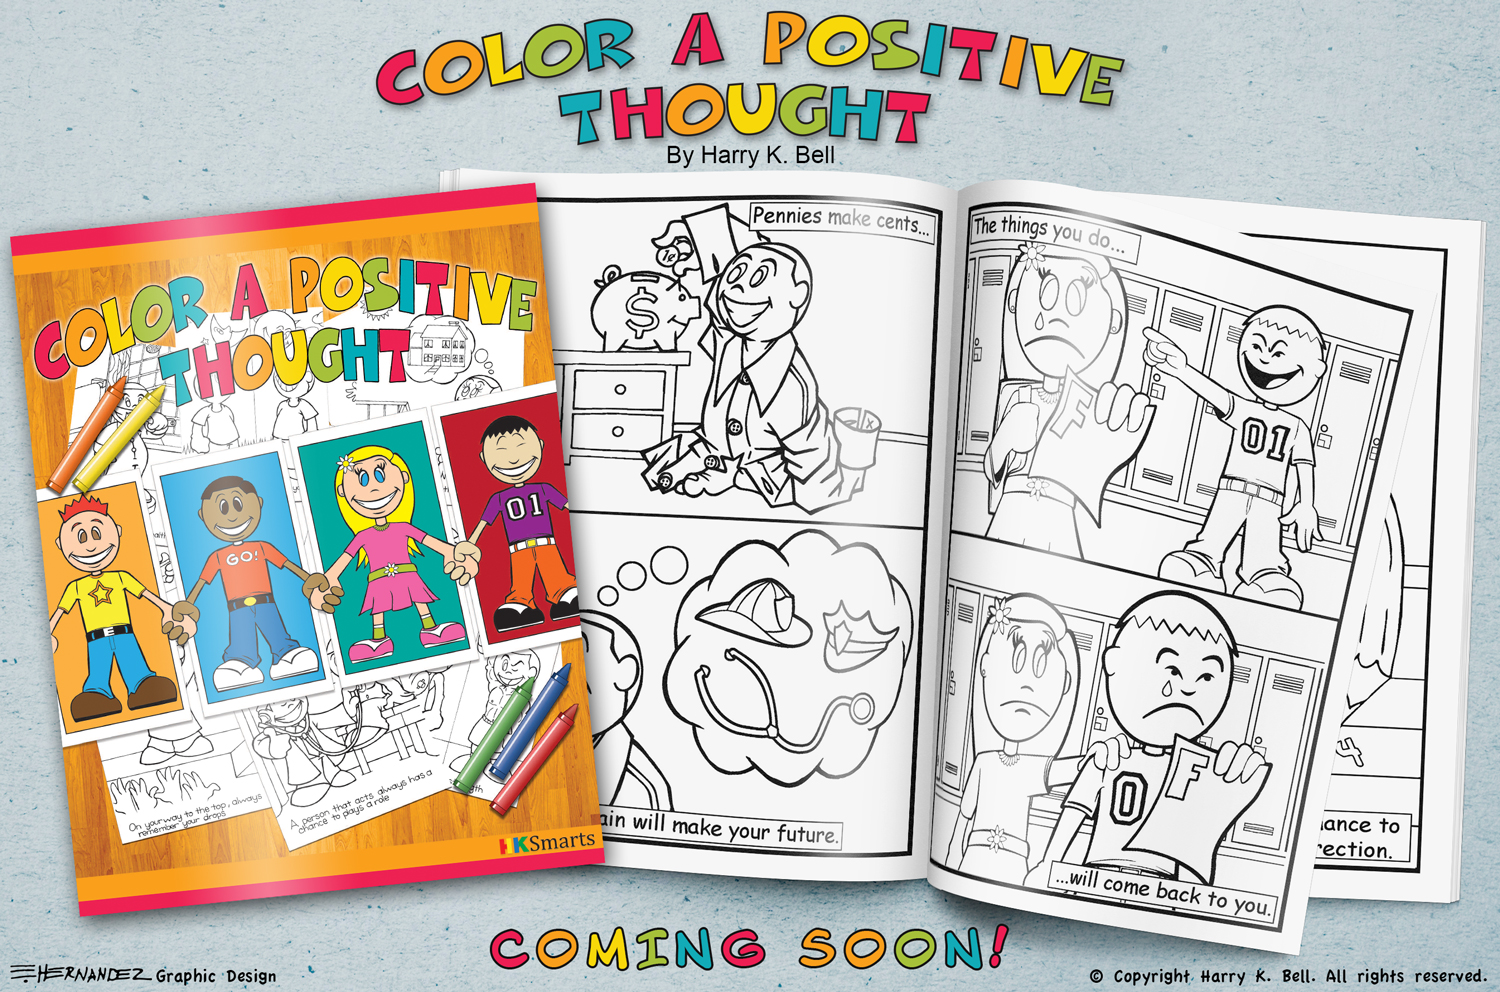 Color a Positive Thought